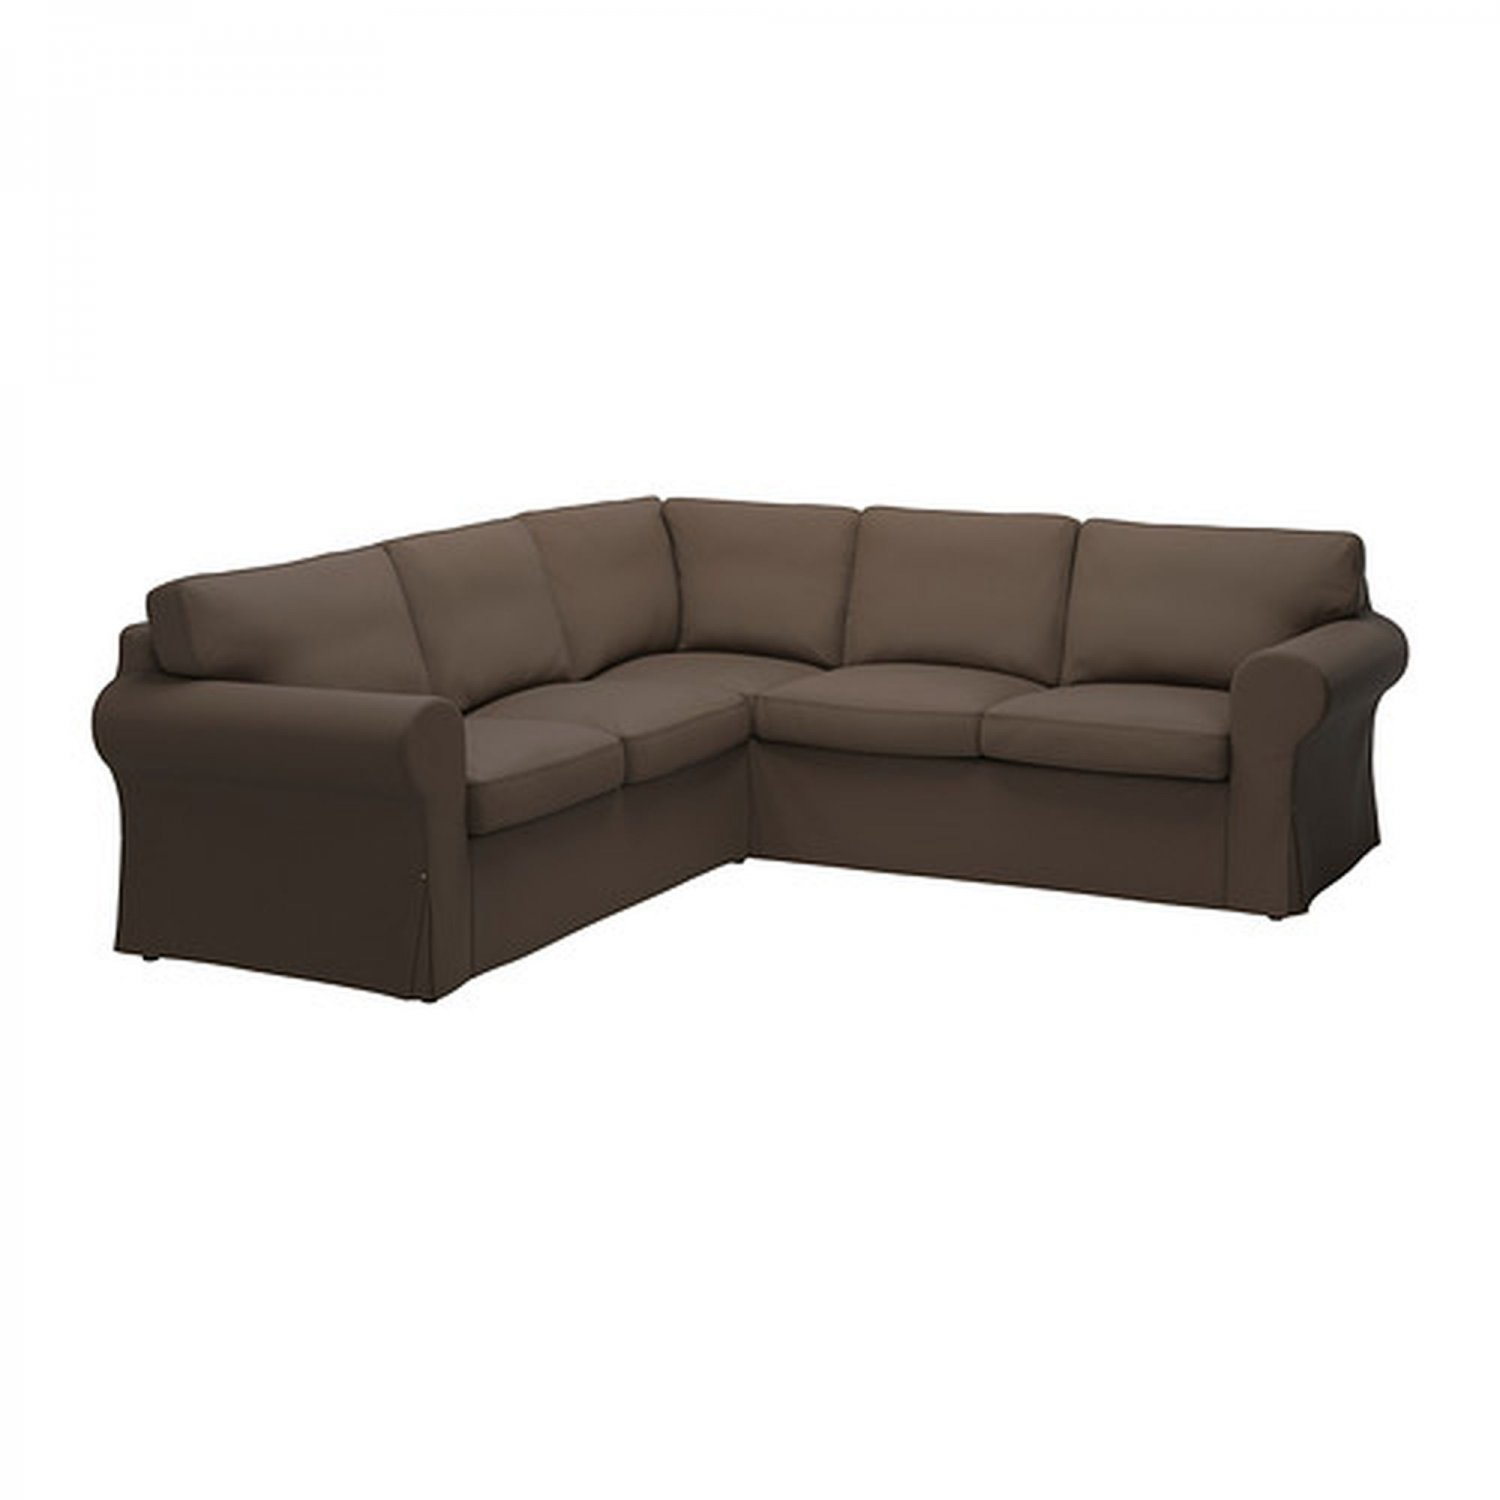 ikea ektorp 2 2 corner sofa cover slipcover jonsboda brown 4 seat sectional cover. Black Bedroom Furniture Sets. Home Design Ideas